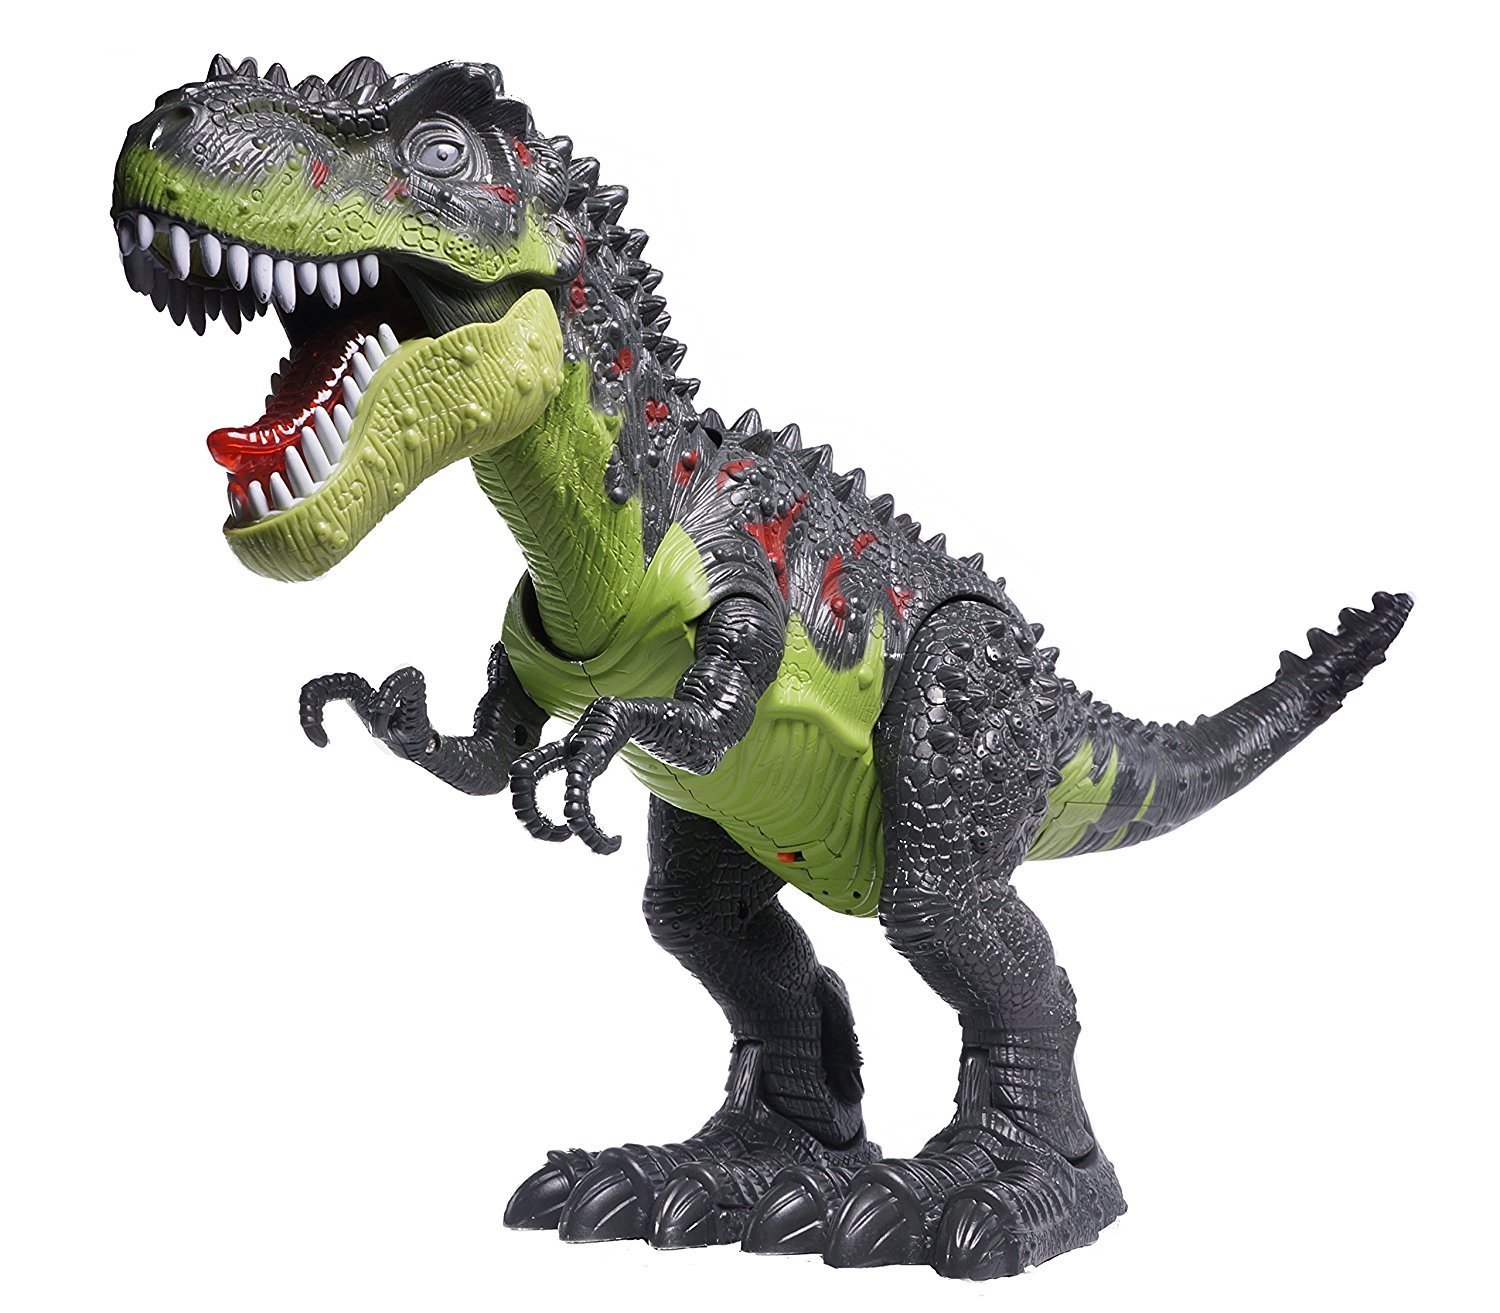 CifToys Tyrannosaurus Rex Dinosaur Walking Dinosaur Toys Kids Toy Realistic Jurassic Trex Dinosaur Action Toy Figure Walking Moving Glowing Dino Figure Green